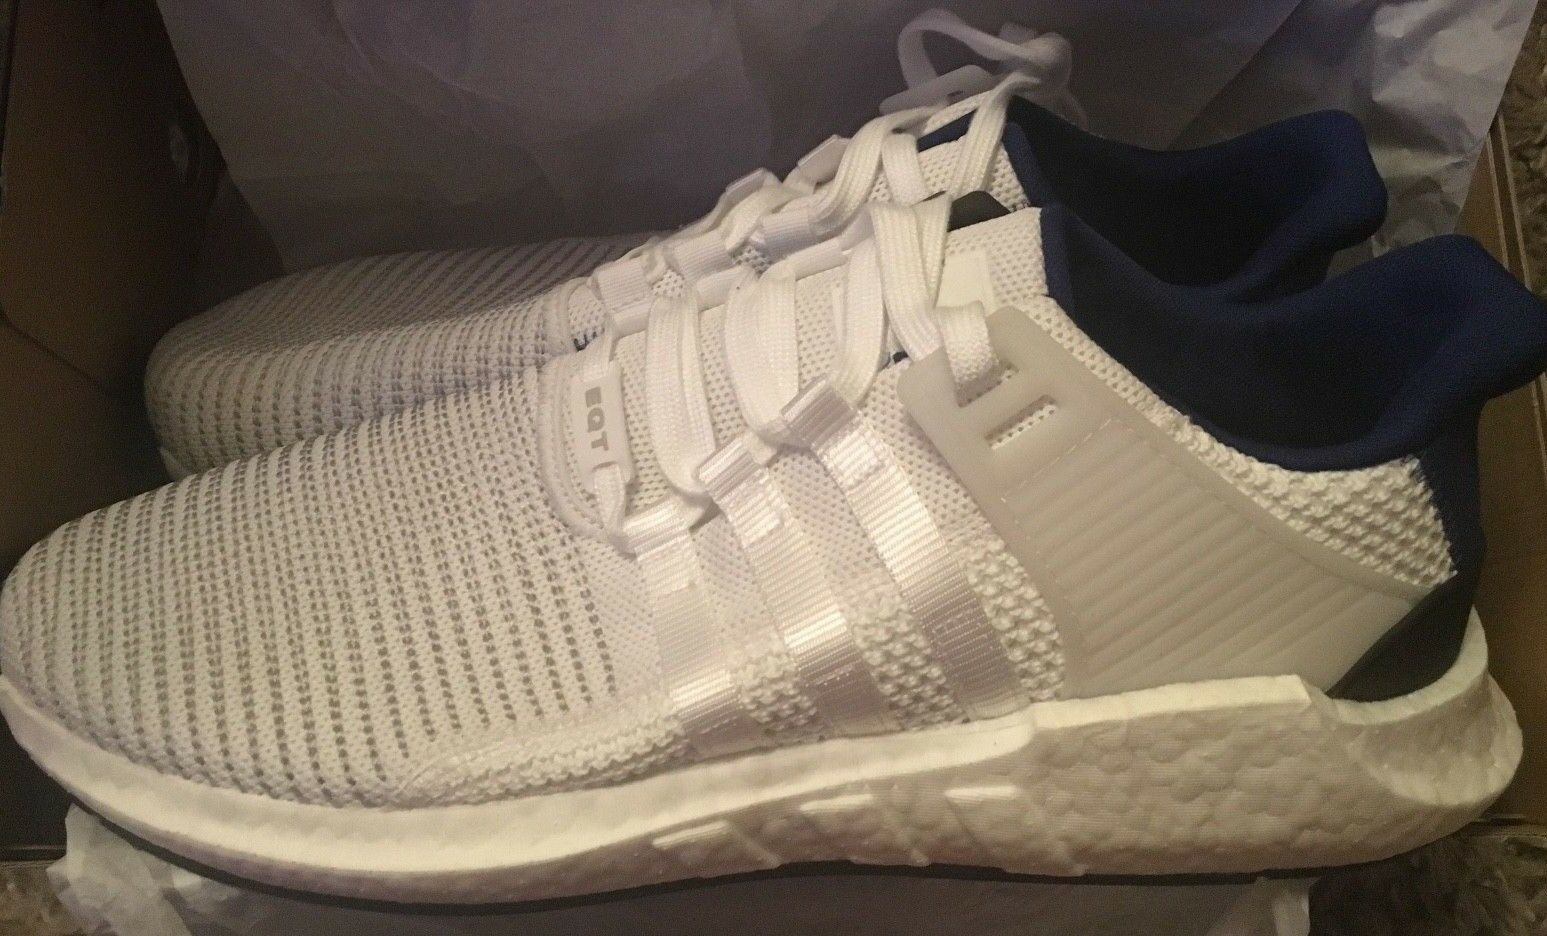 Adidas EQT Support 93 17 Boost- UK Size 13.5-